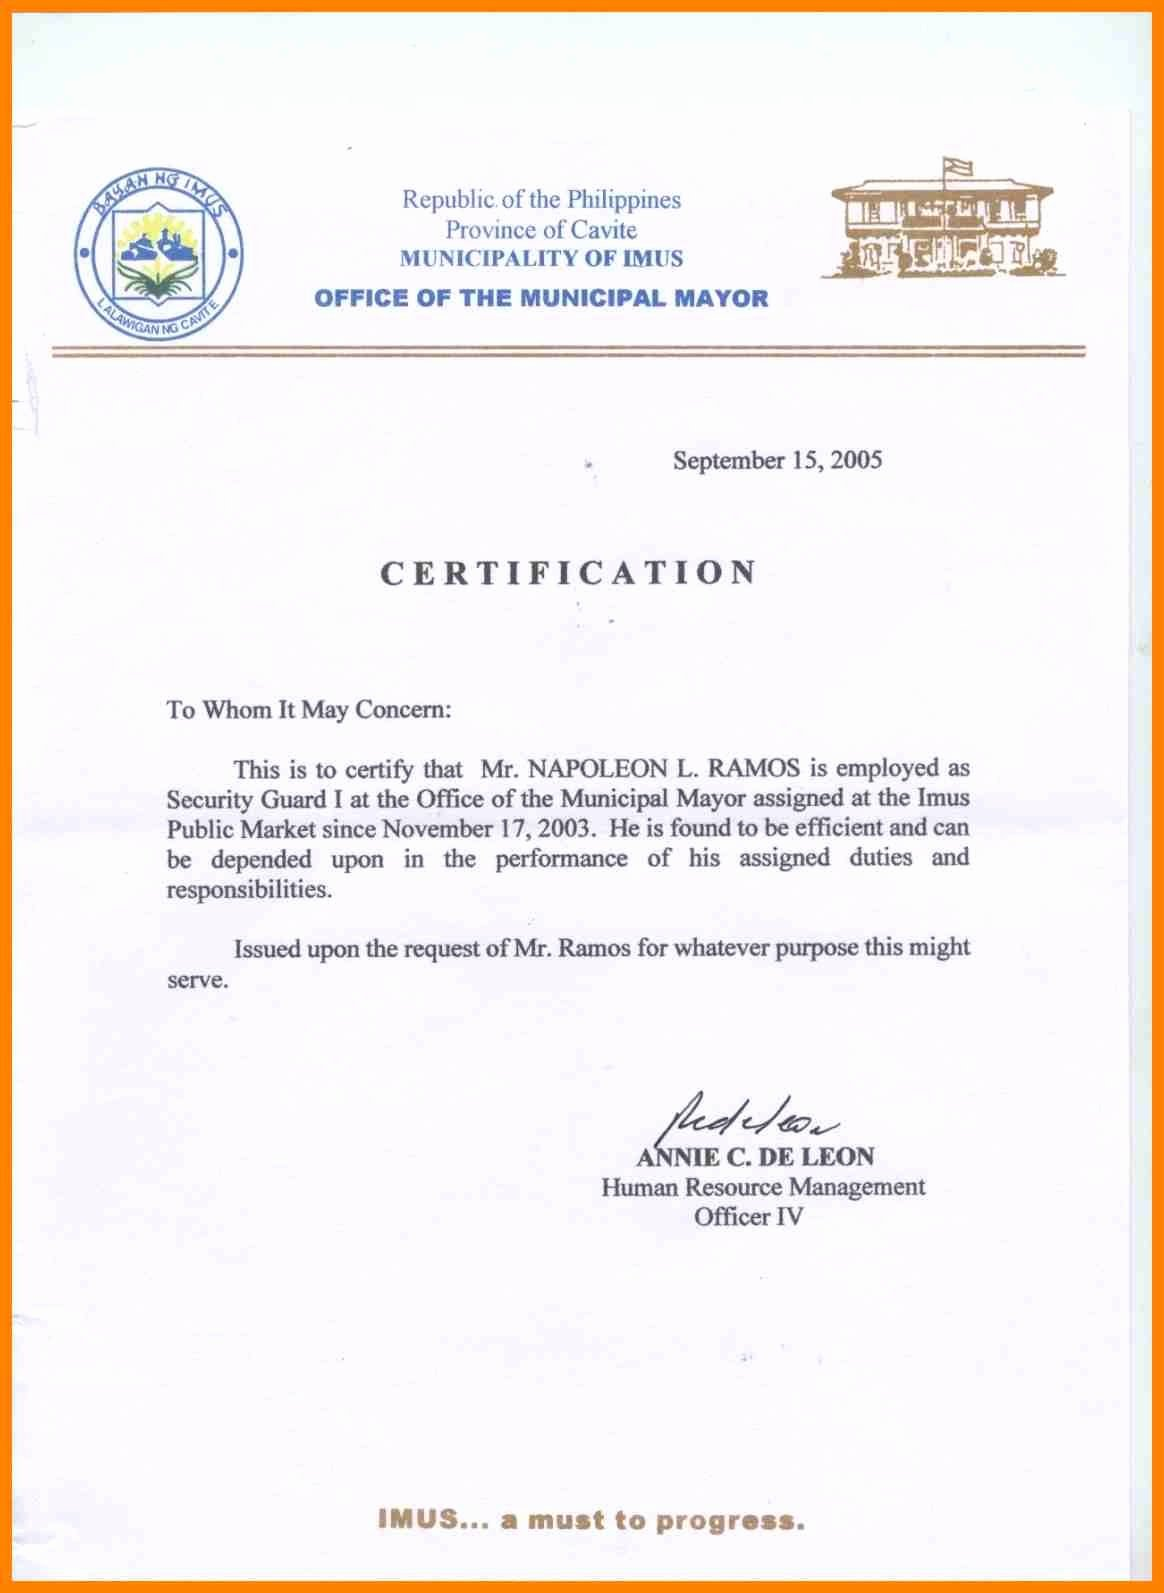 Sample Of Certificate Of Employment Fresh Sample Certification Letter Philippines Certificate